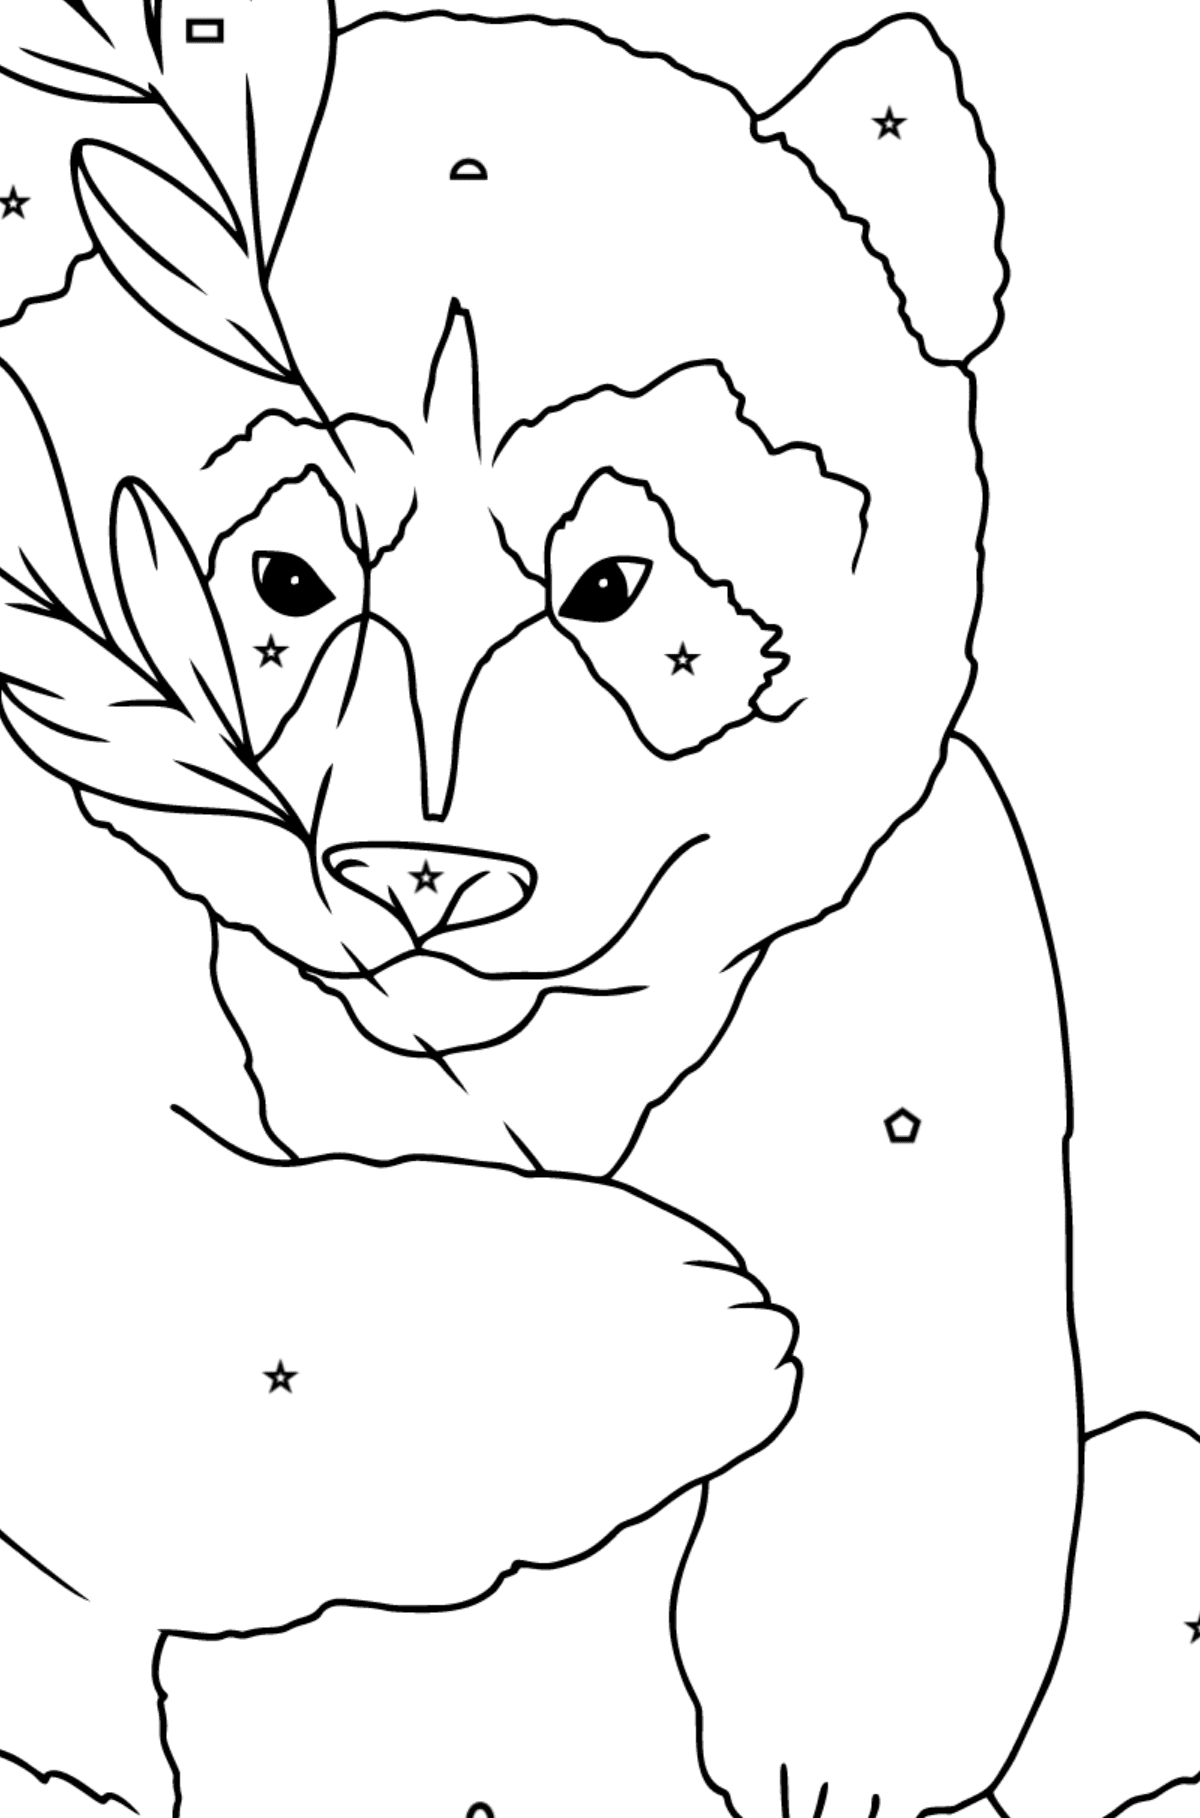 Coloring Page - A Panda is Hugging Bamboo Leaves - Coloring by Geometric Shapes for Children